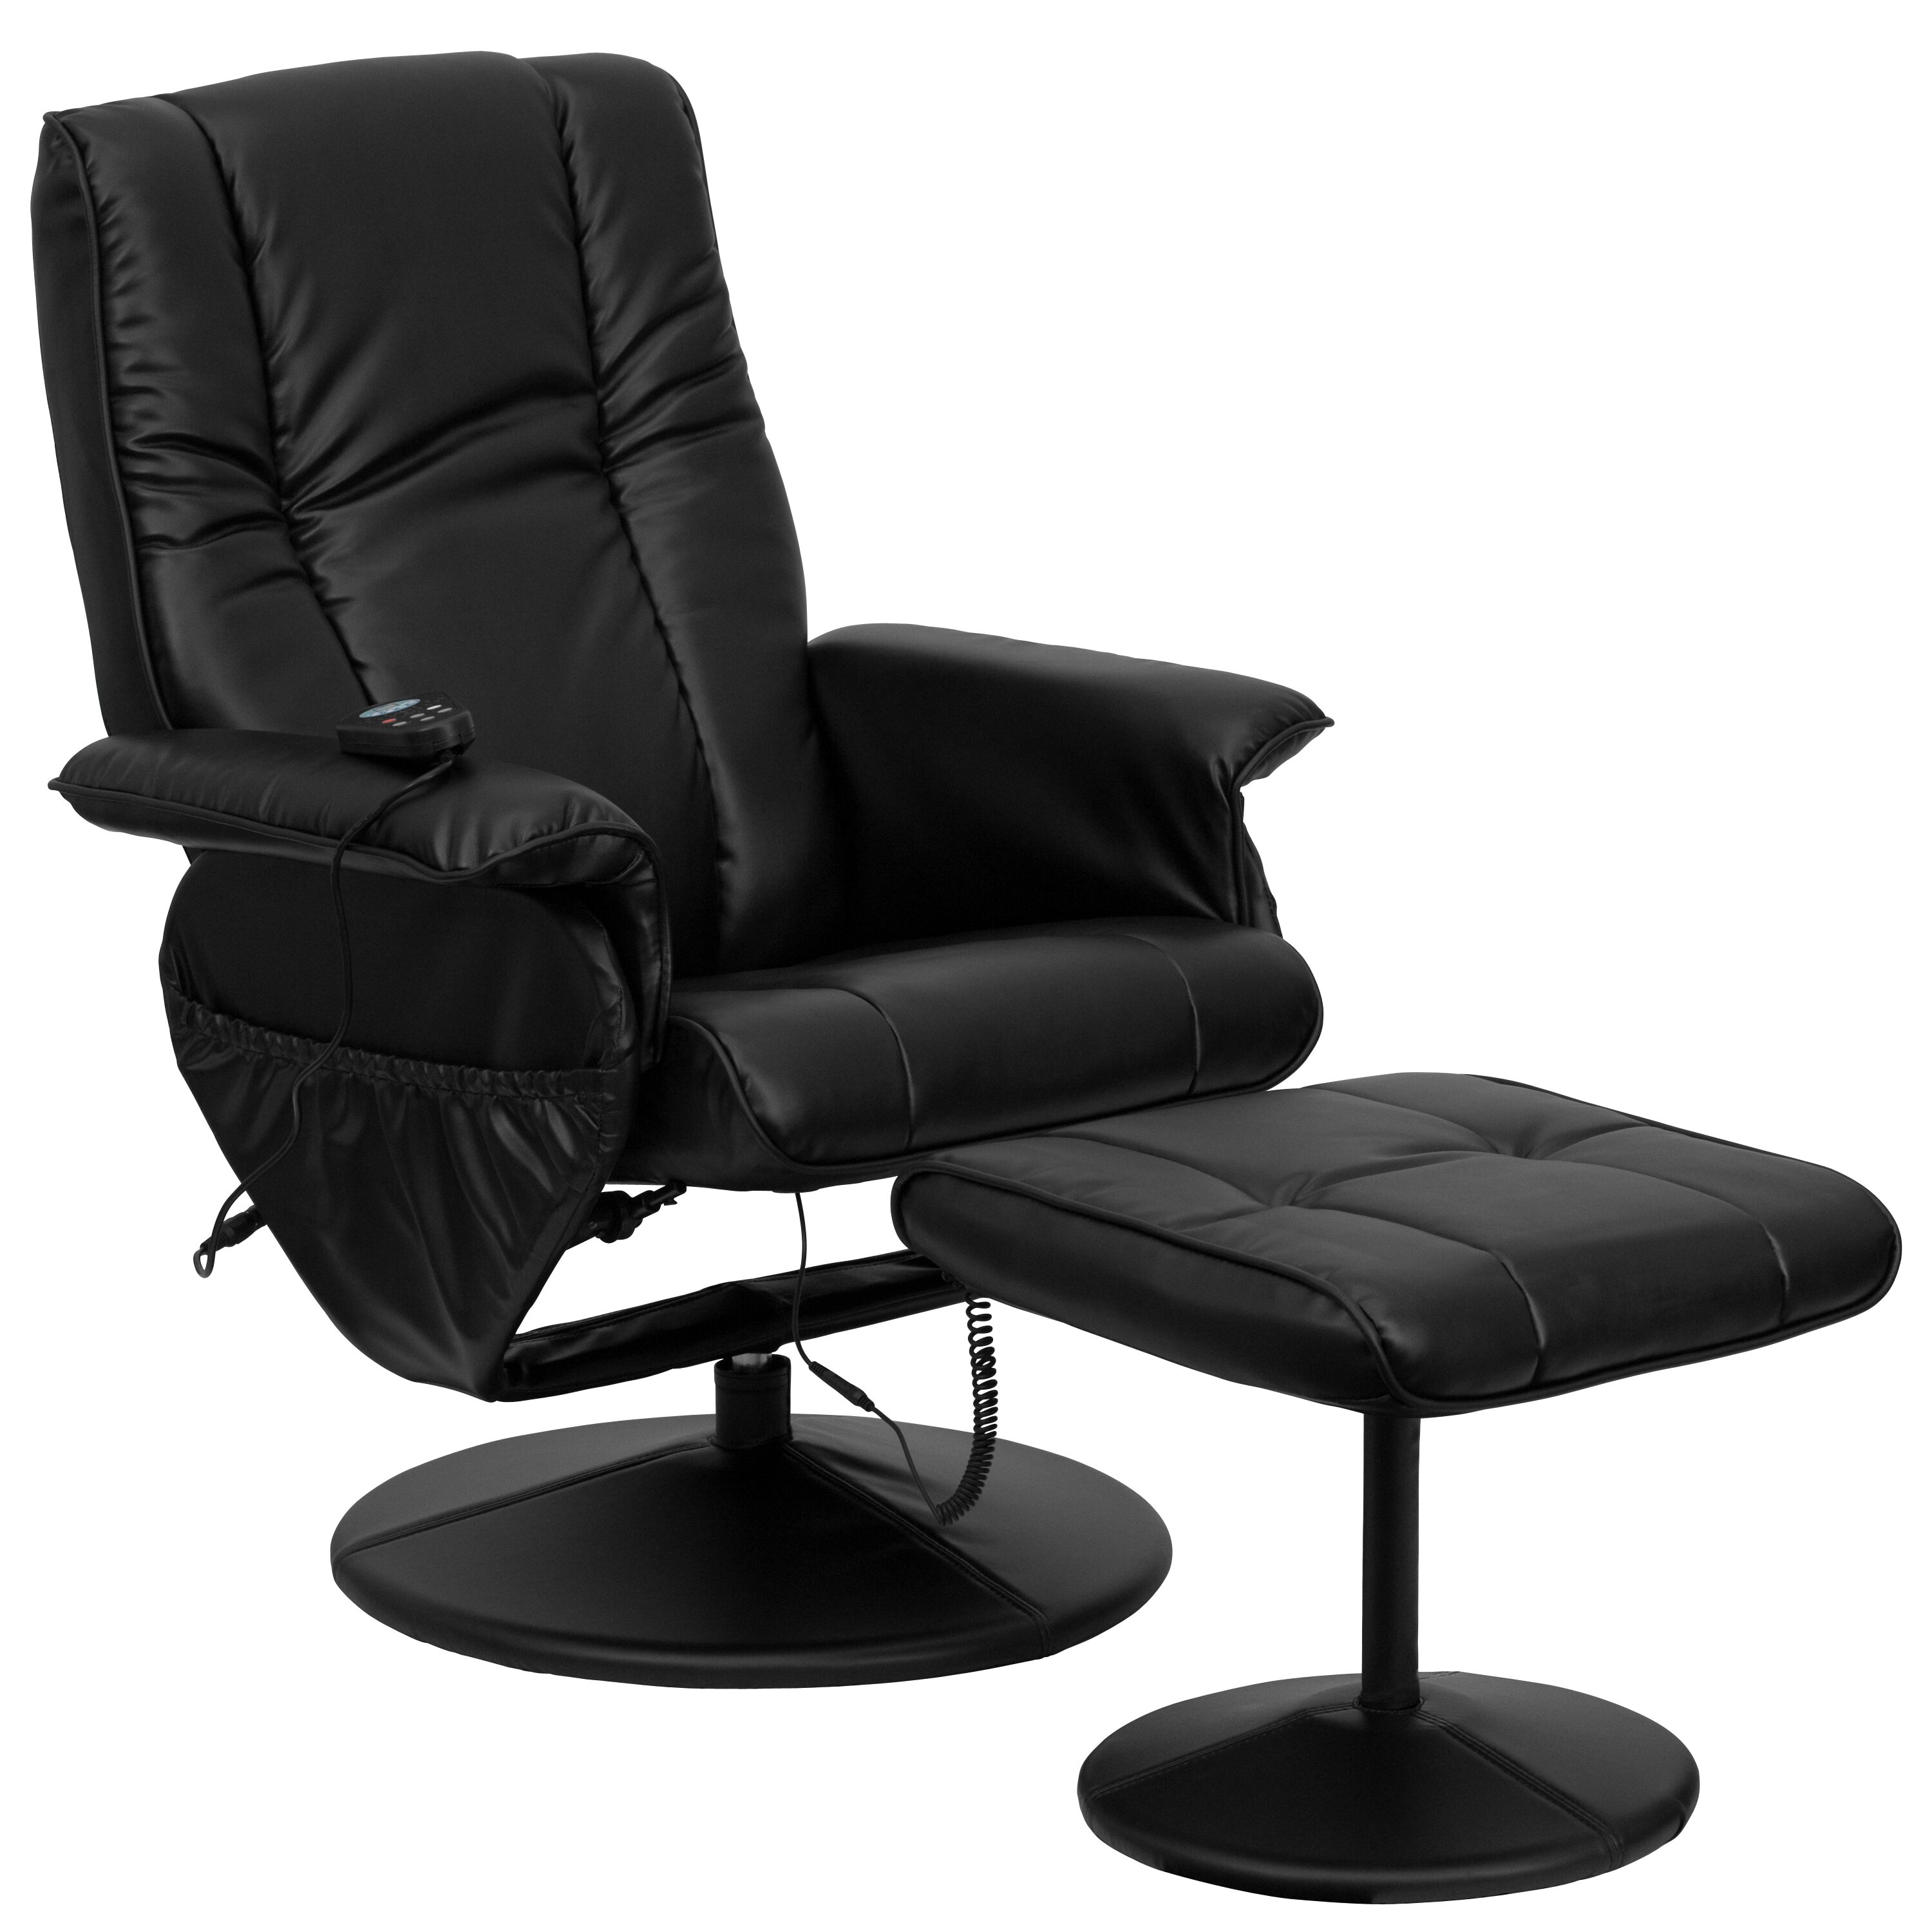 Zipcode Design Leather Heated Reclining Massage Chair With Ottoman Rev